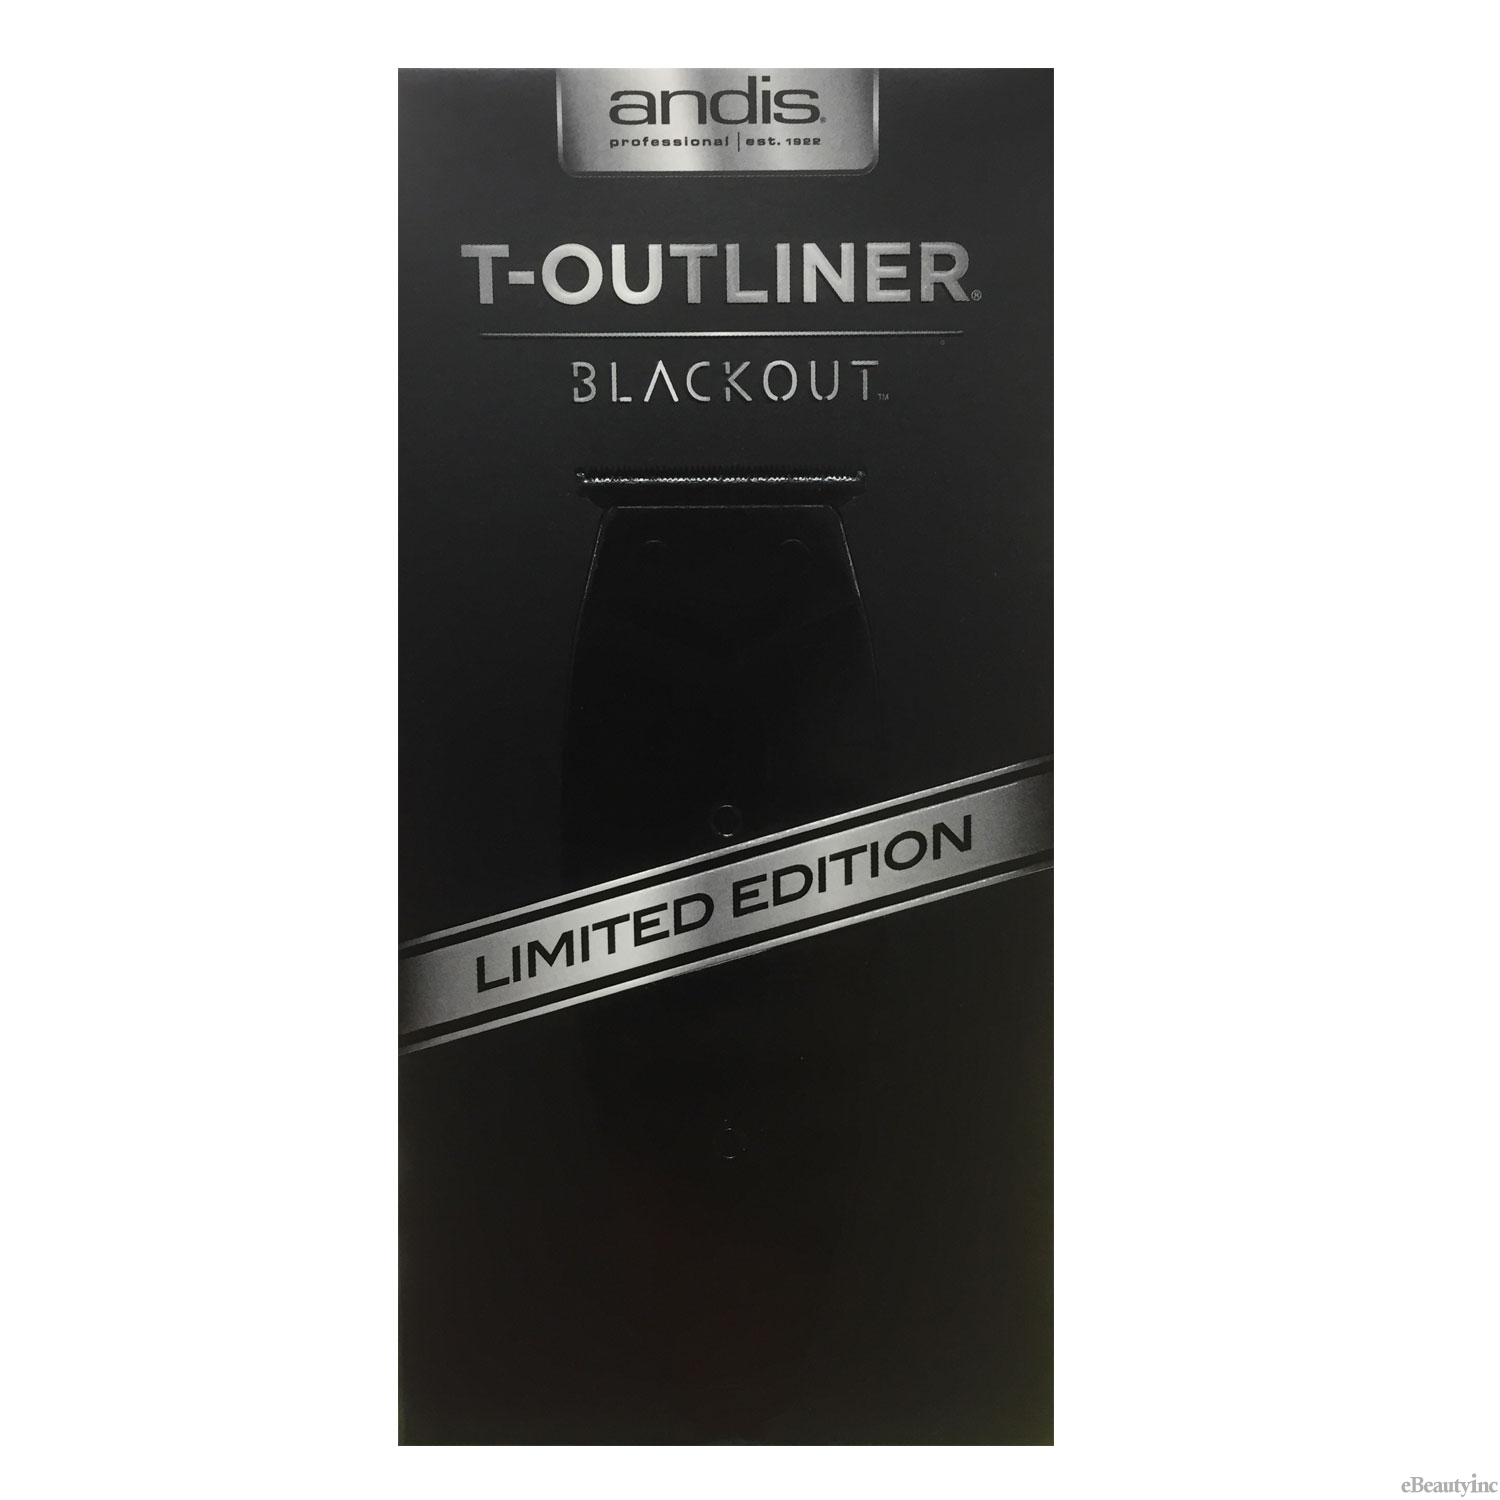 Image of Andis T-Outliner Blackout Limited Edition Trimmer #05110